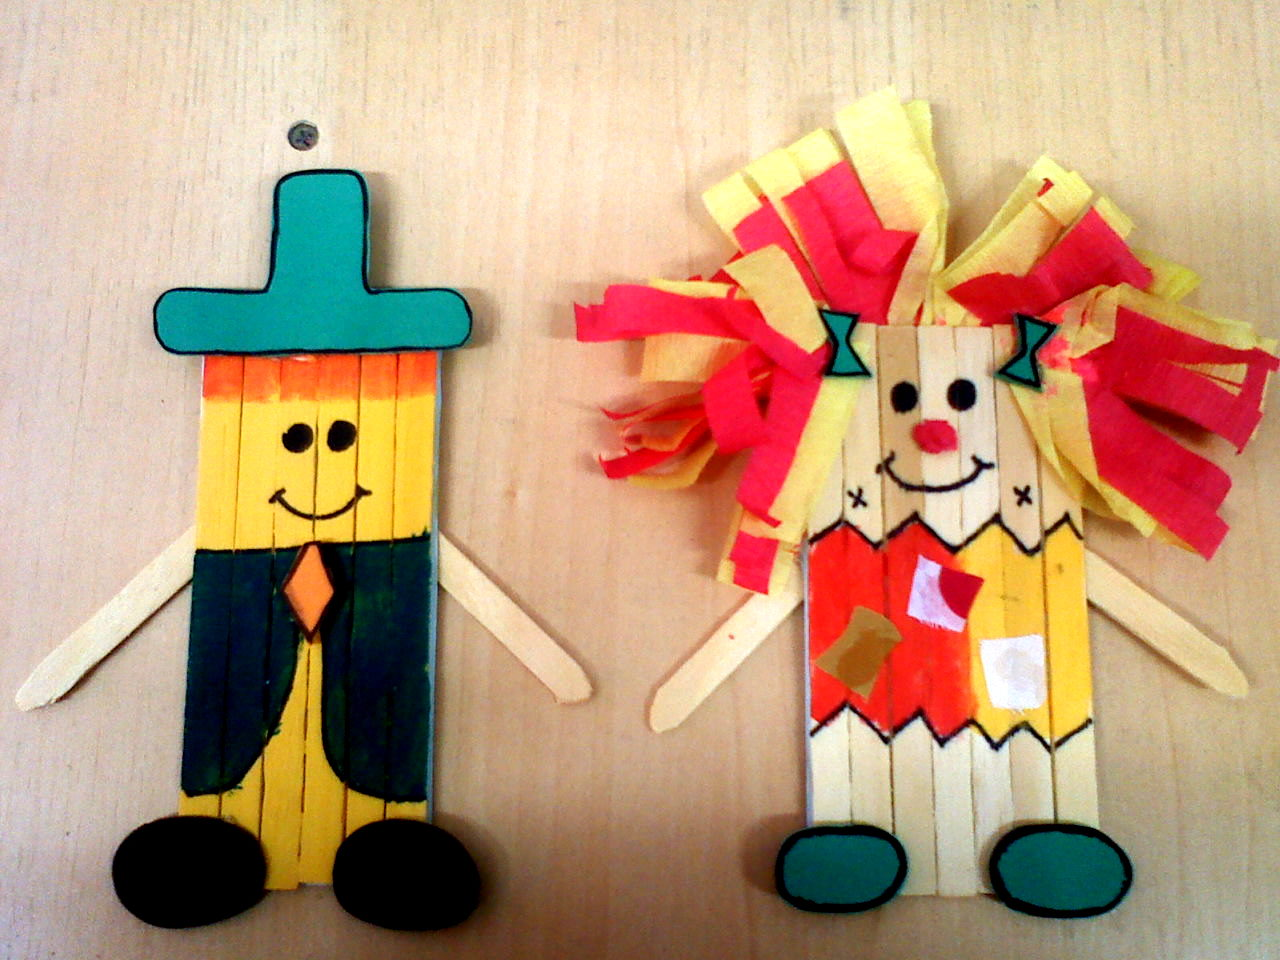 Palitos De Picol   Os Personagens Do S  Tio Do Pica Pau Amarelo